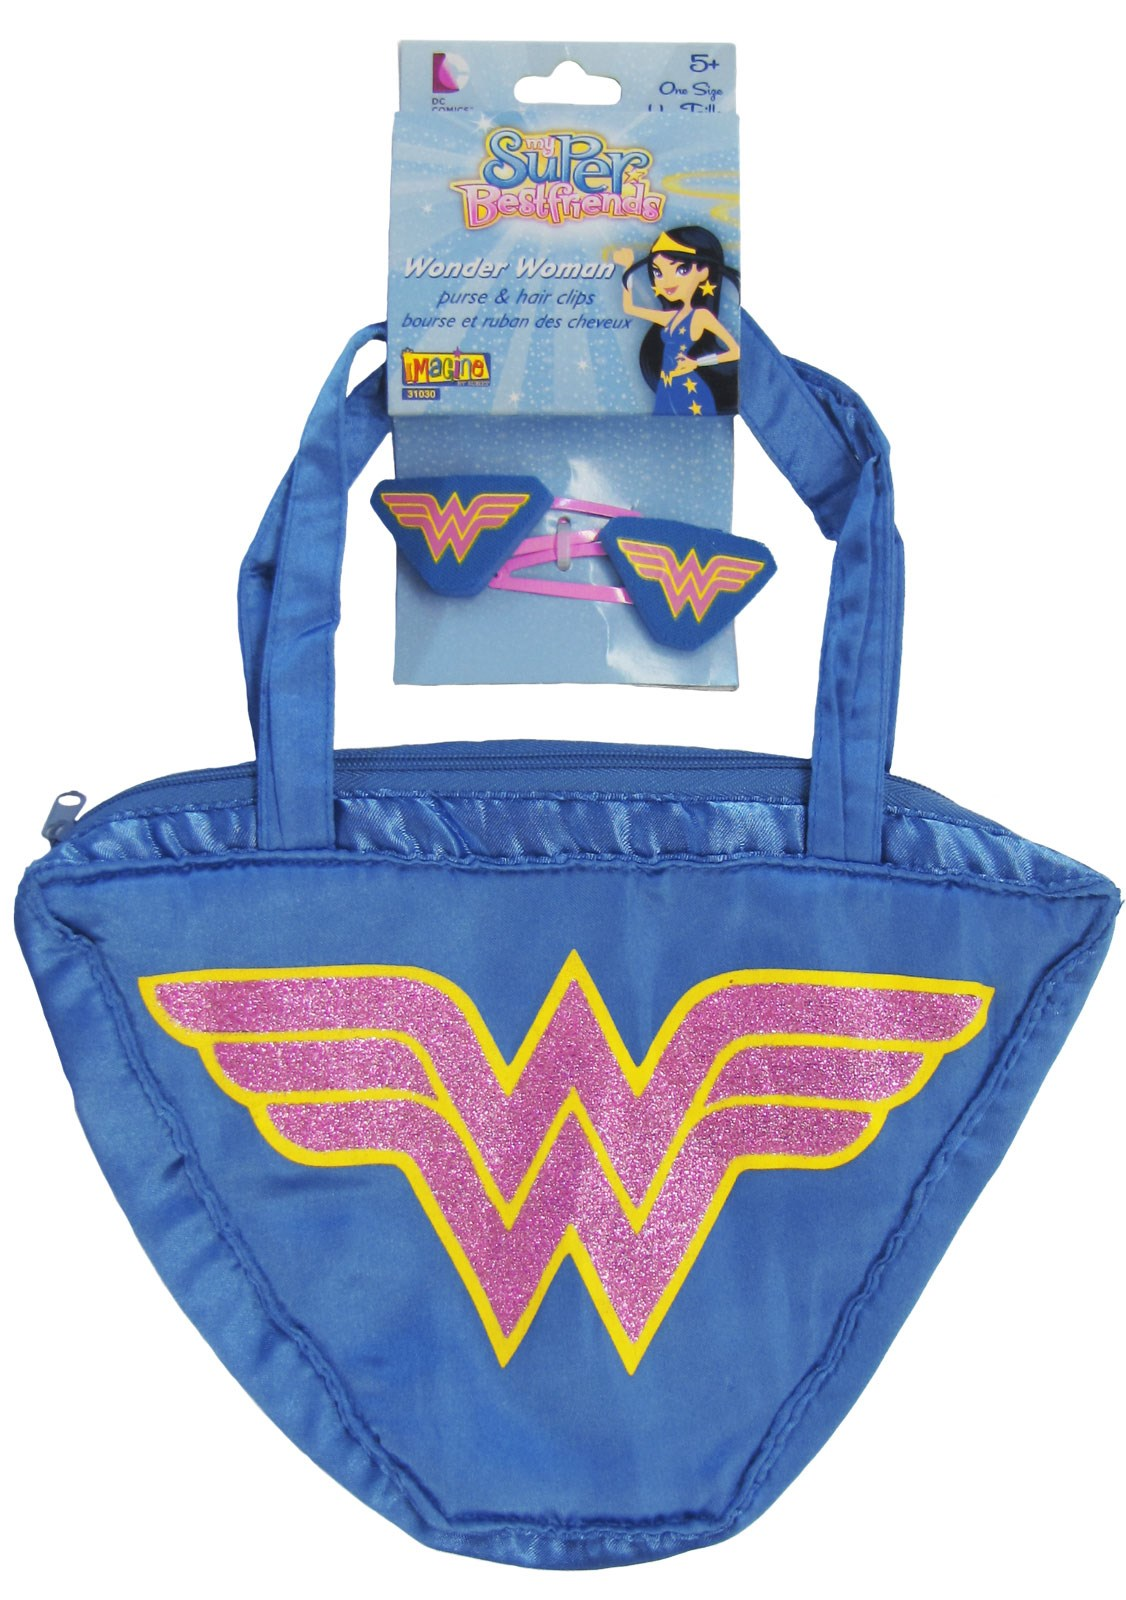 Wonder Woman - Hair Clips & Purse Set